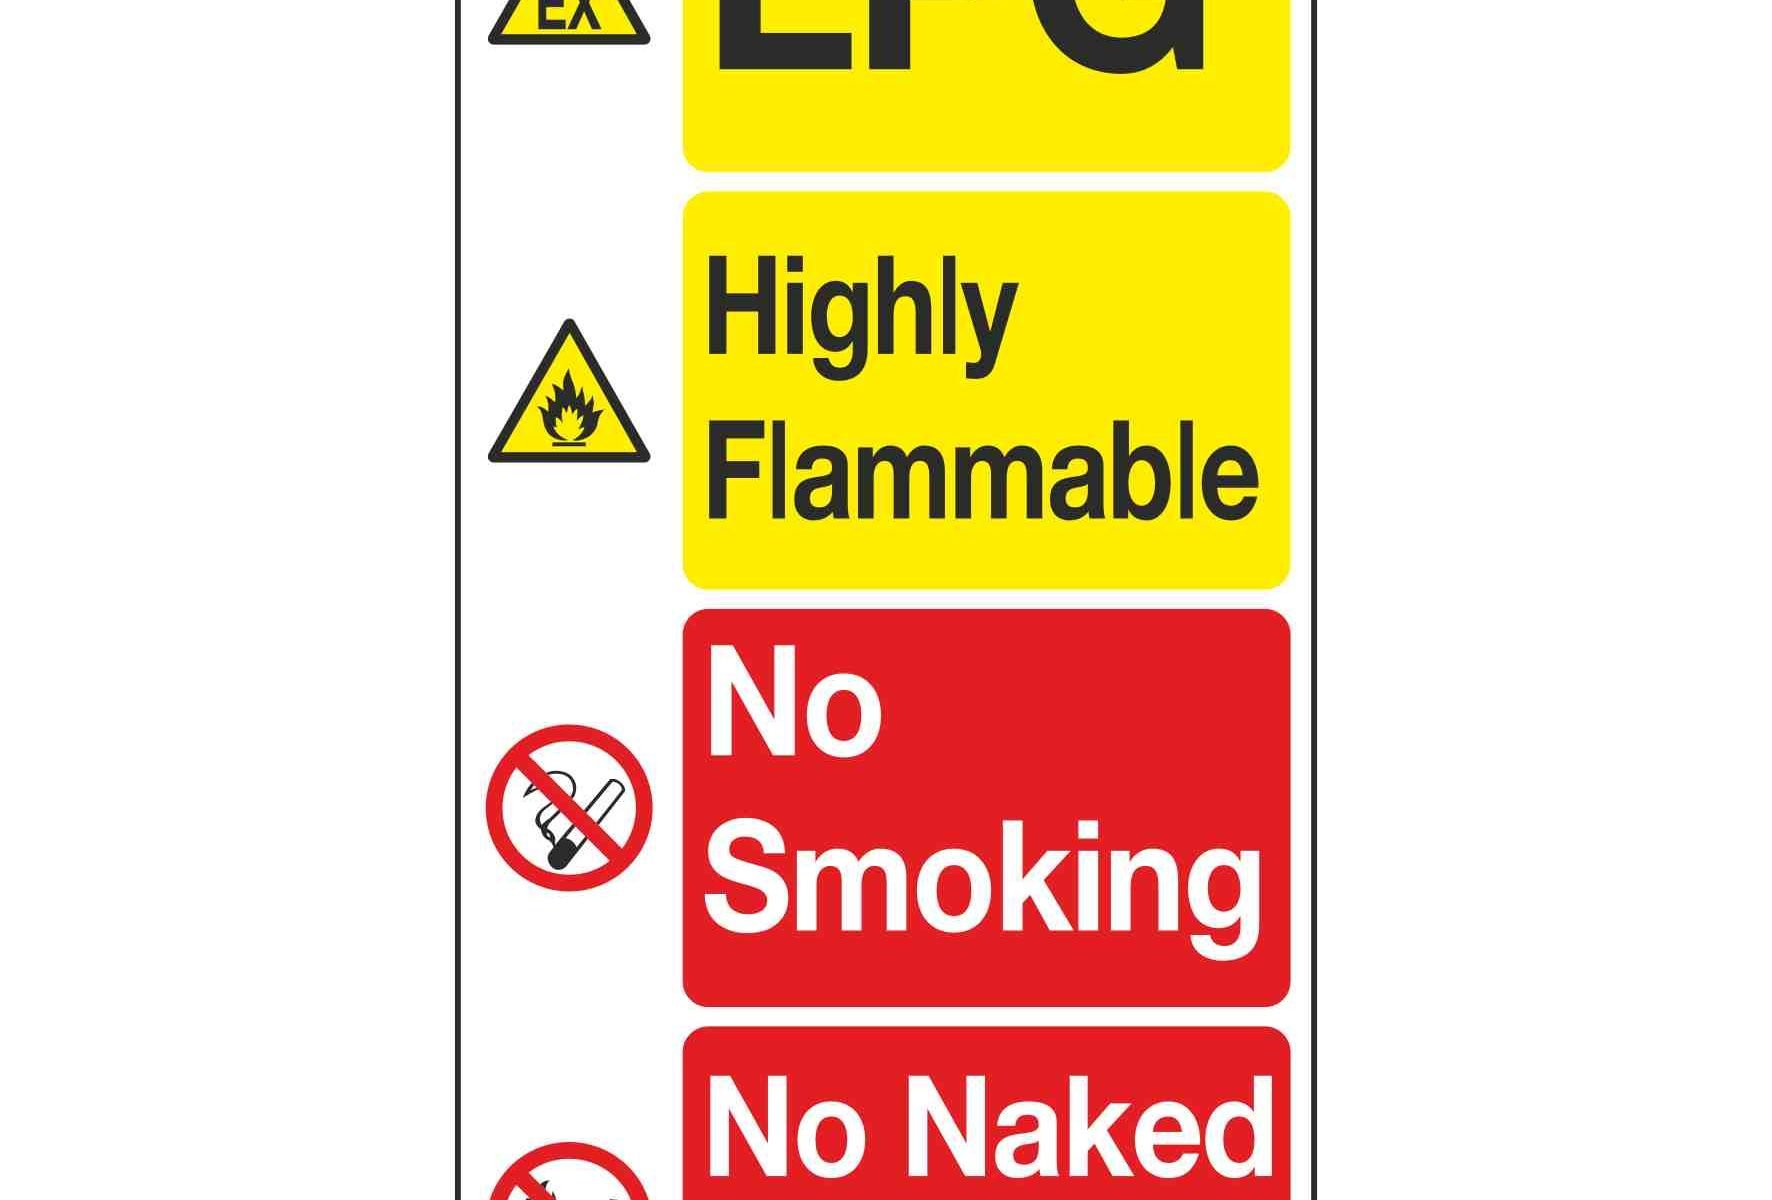 LPG / Highly Flammable / No Smoking / No Naked Lights